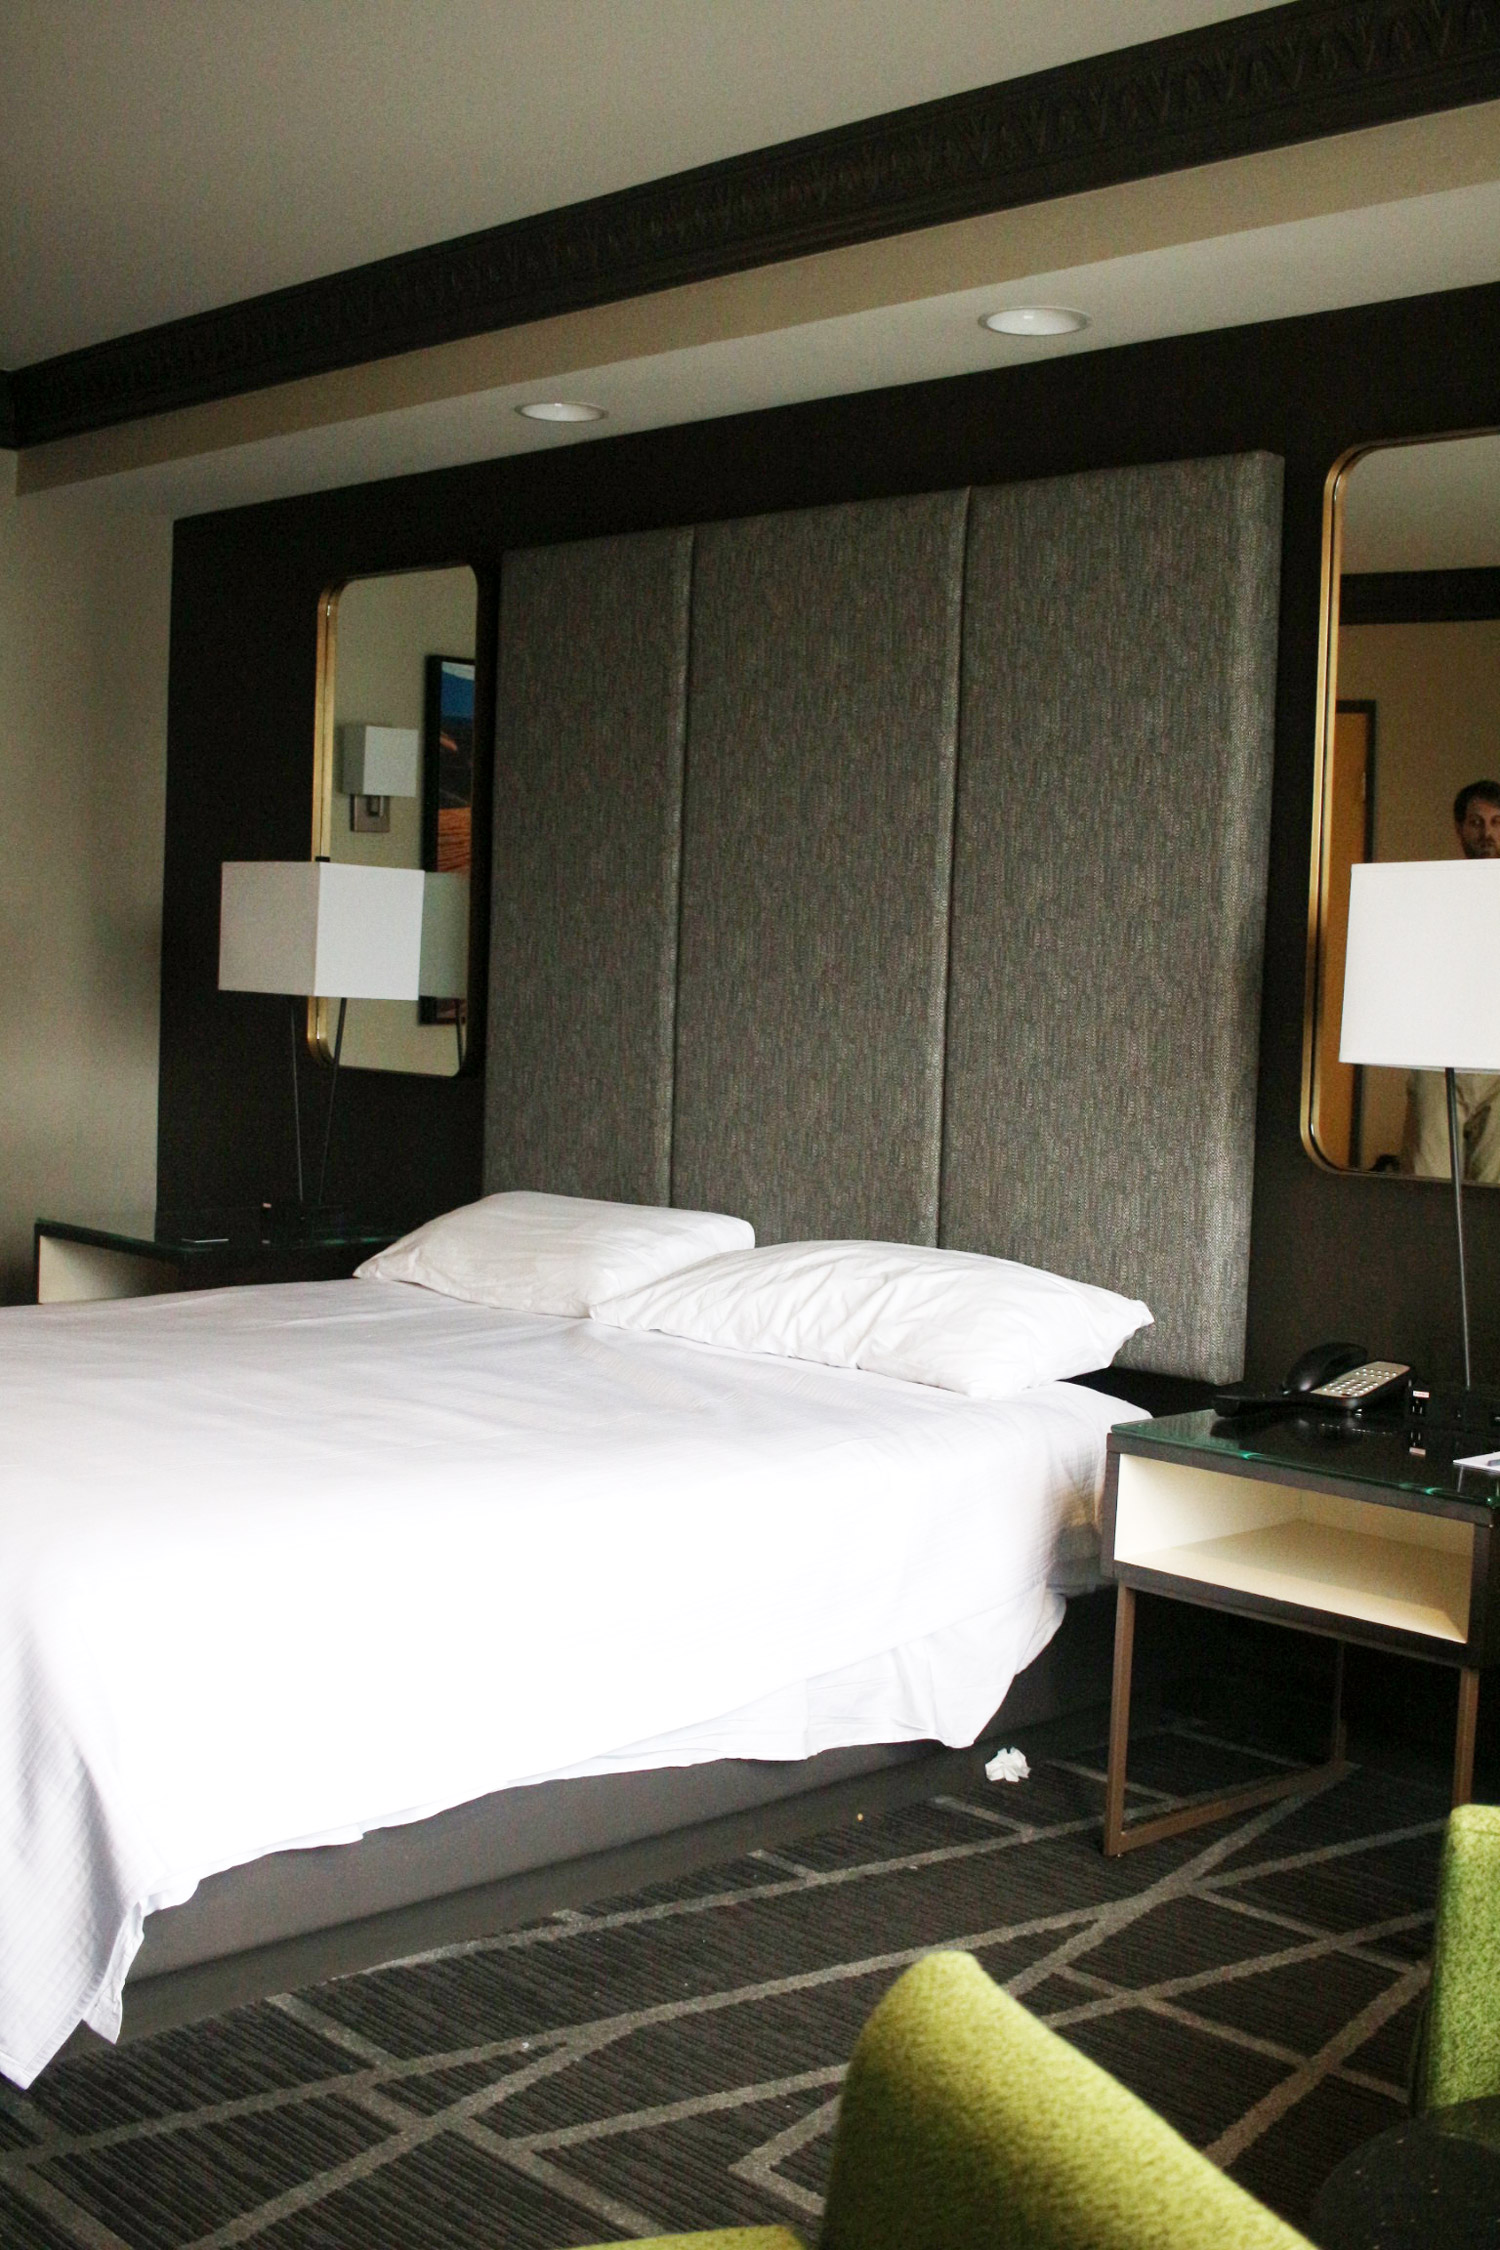 las-vegas-the-luxor-hotel-review-king-room-2